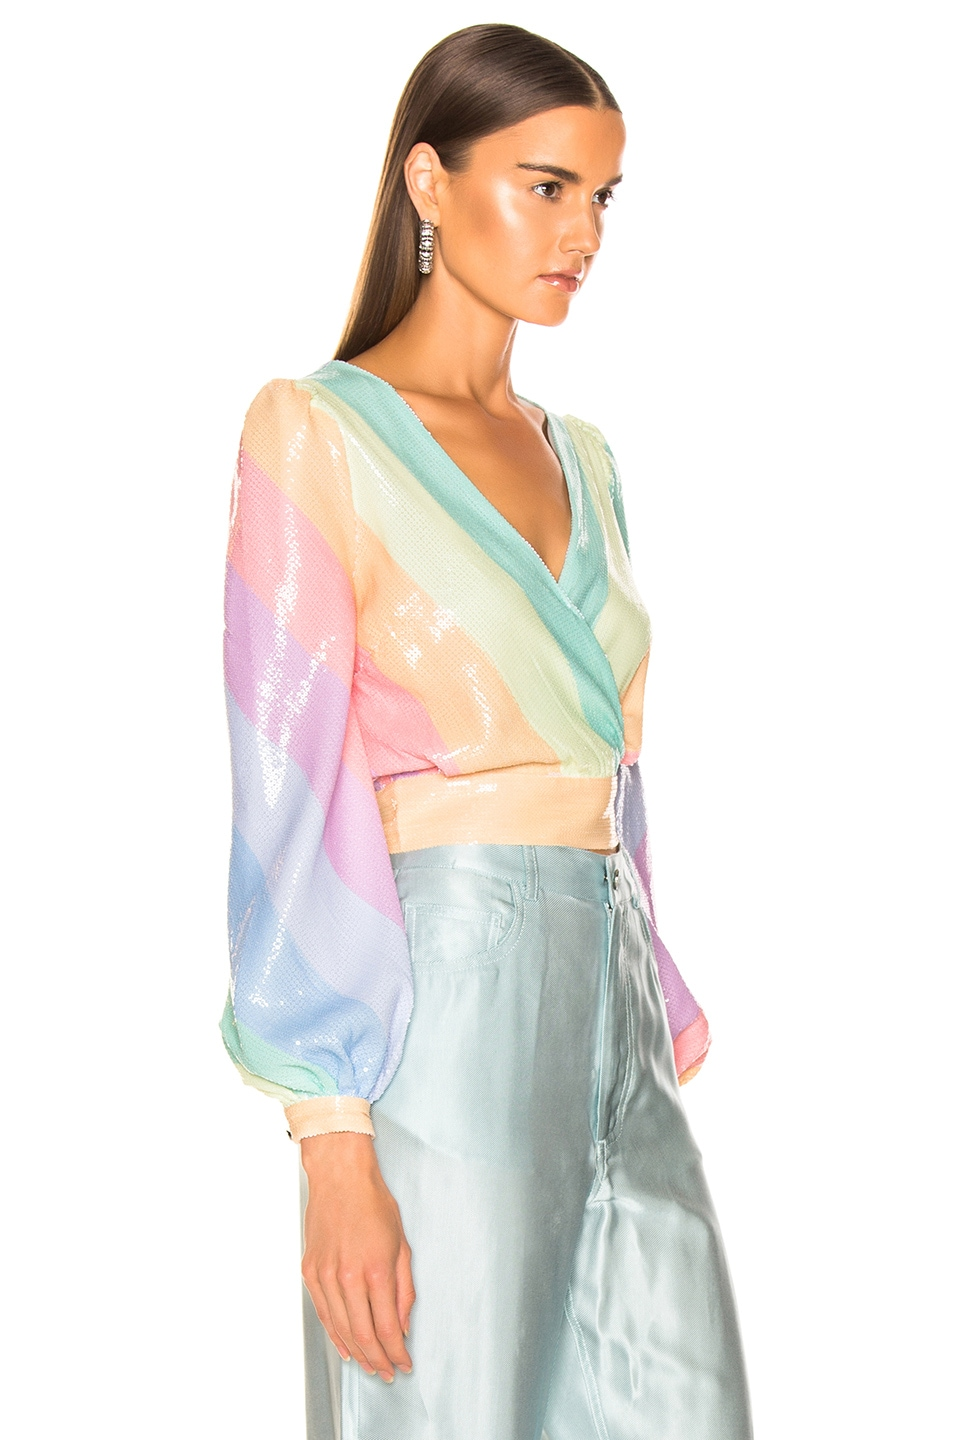 Image 2 of Olivia Rubin for FWRD Kendall Top in Pastel Rainbow